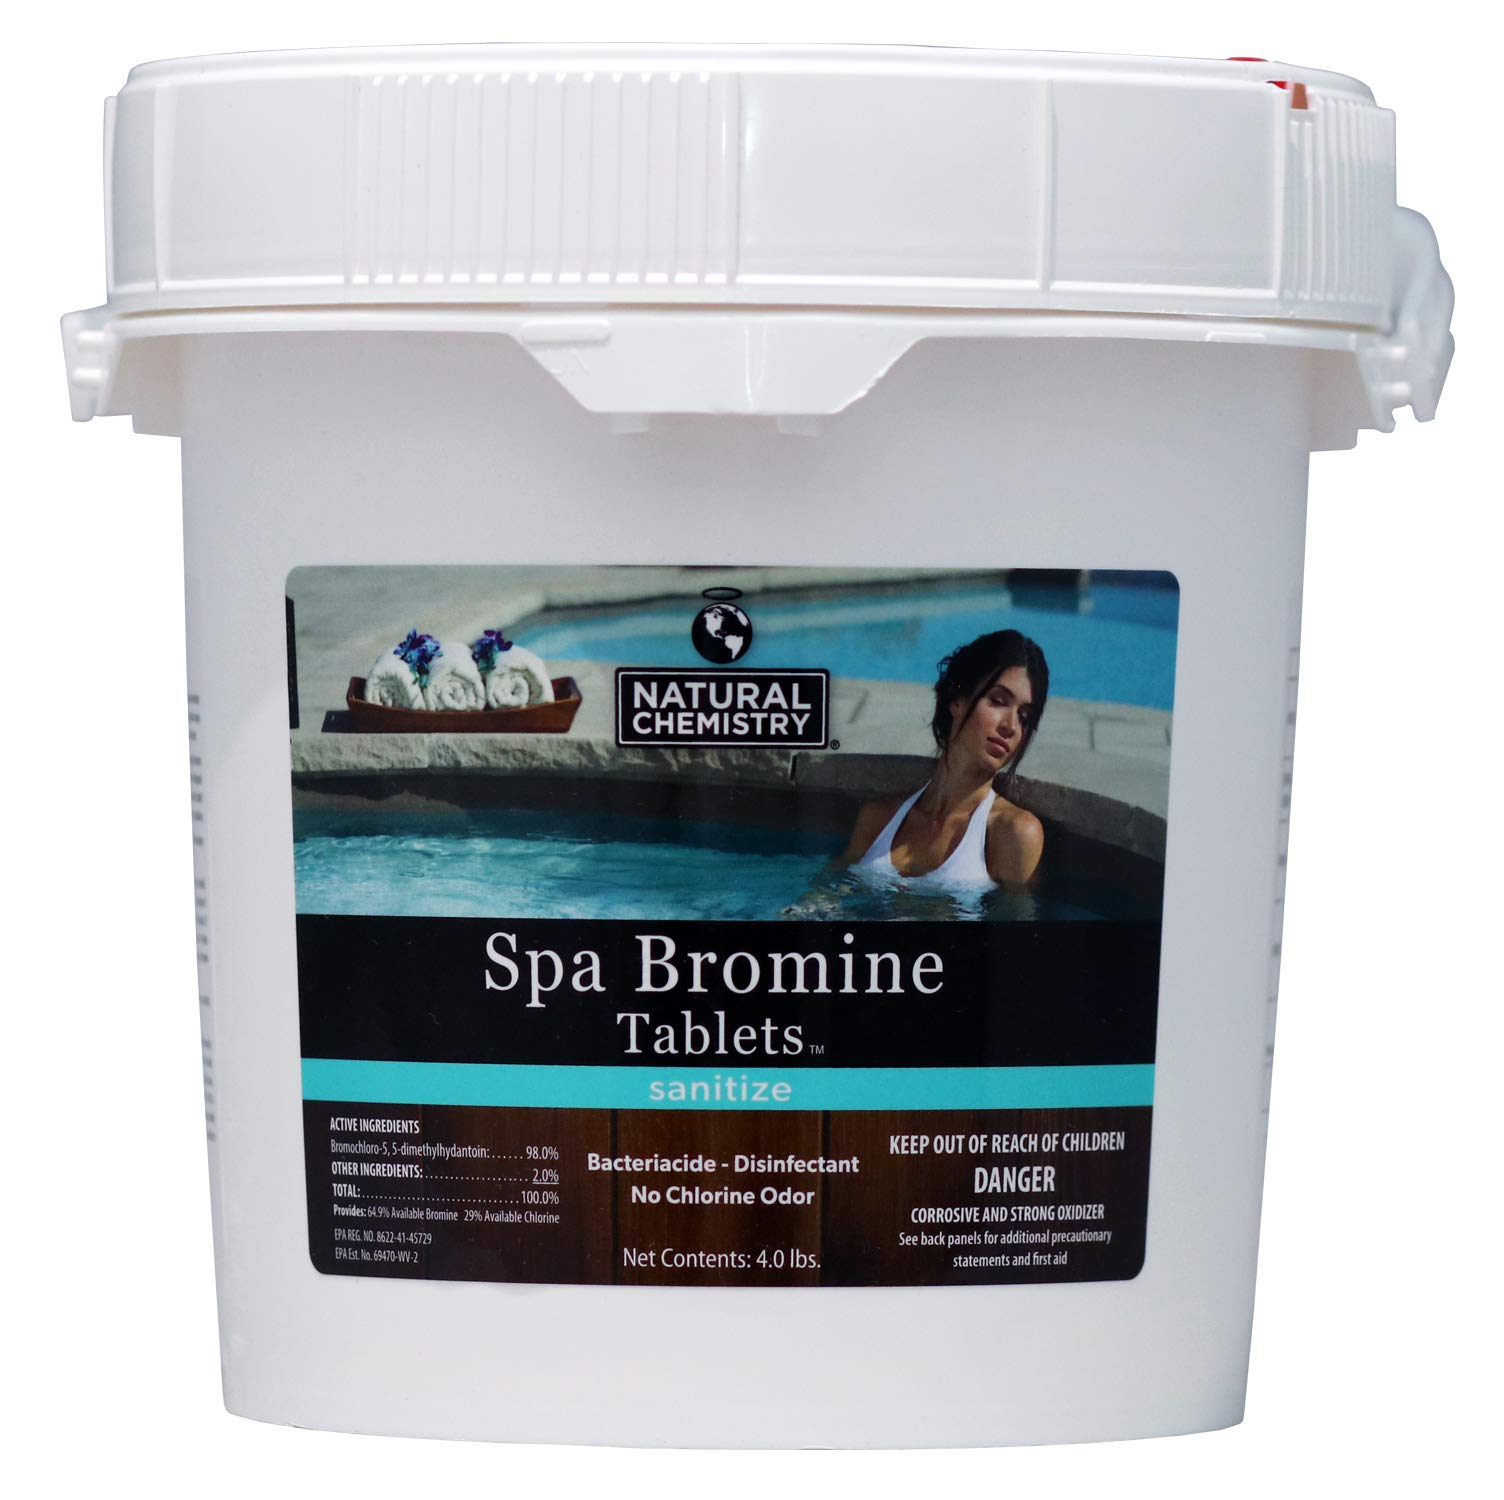 Commercial Pool Parts Natural Chemistry Bromine Tablets 4 LB for Hot Tub & Spa - Bacteriacide Disinfectant - No Chlorine Odor - 04210 04110 by Commercial Pool Parts